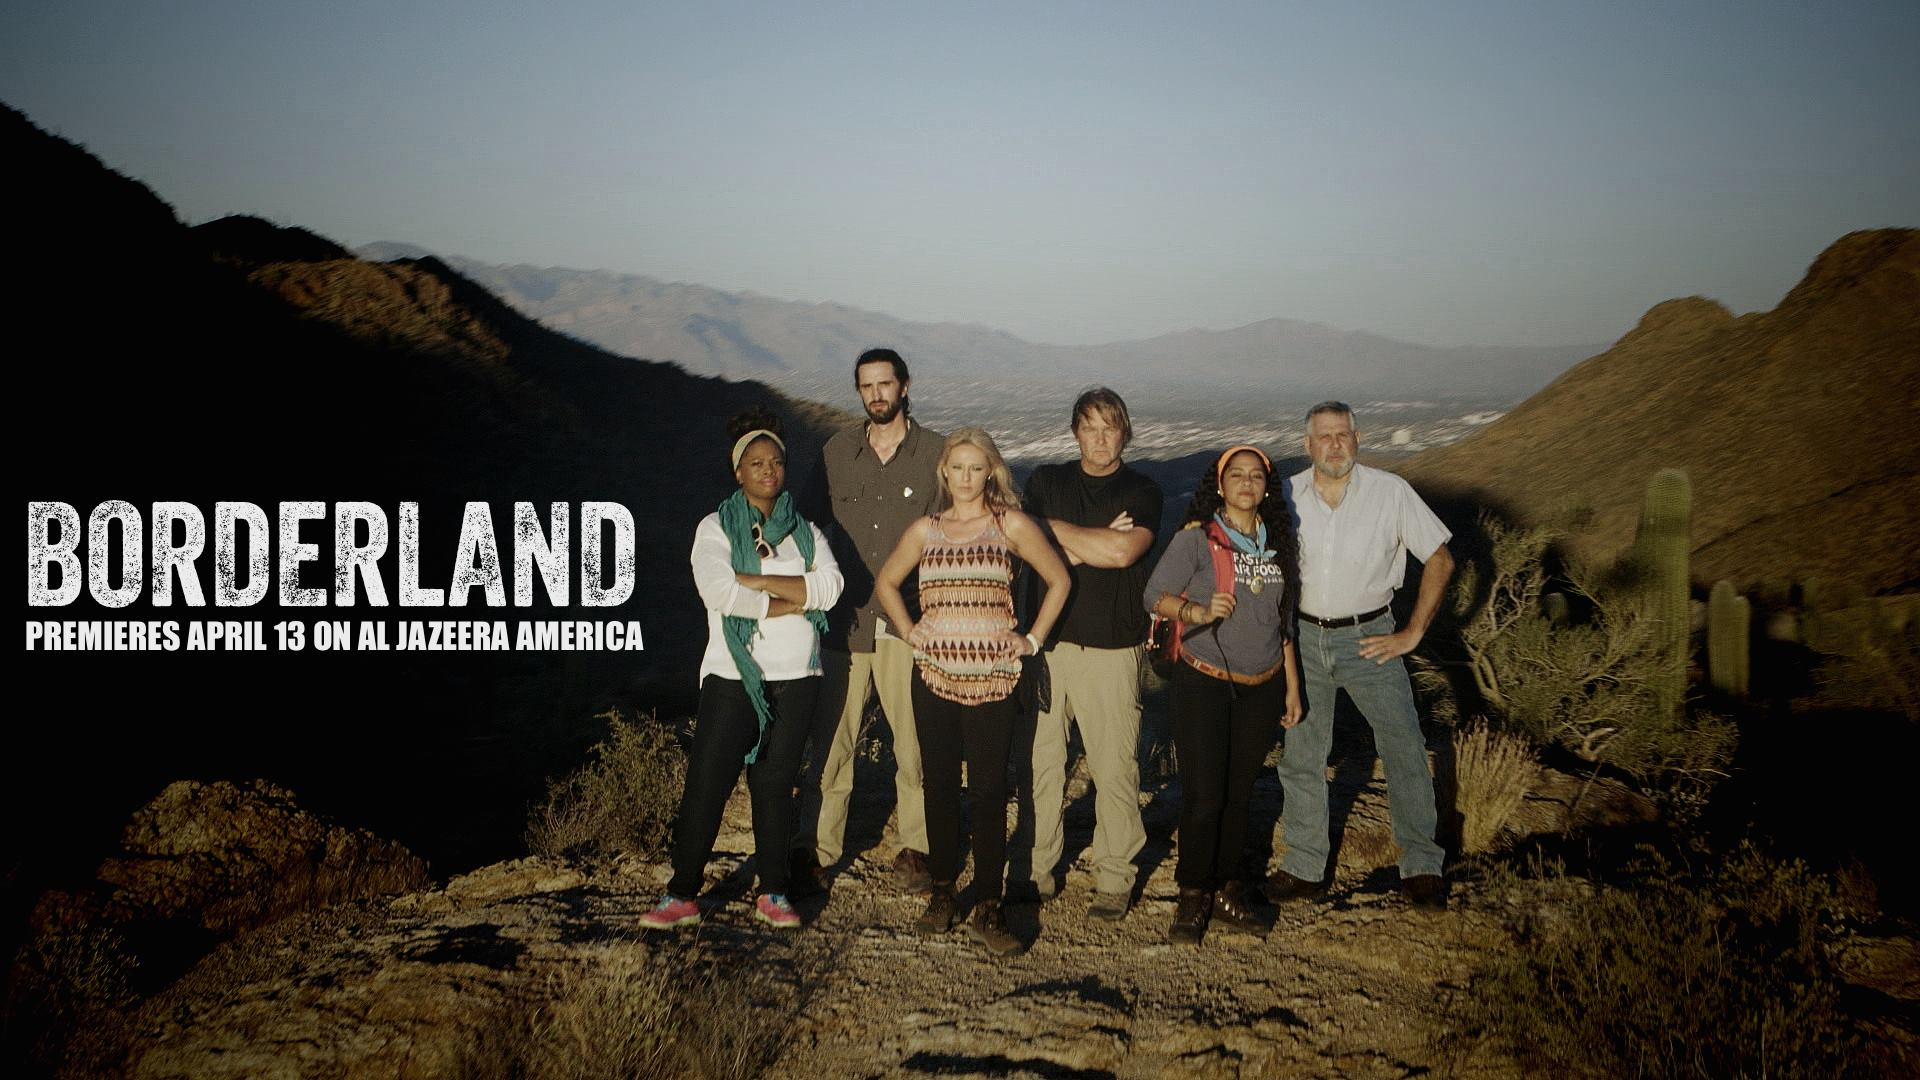 Niche Parent Community Joins together to discuss Al Jazeera America's Borderland